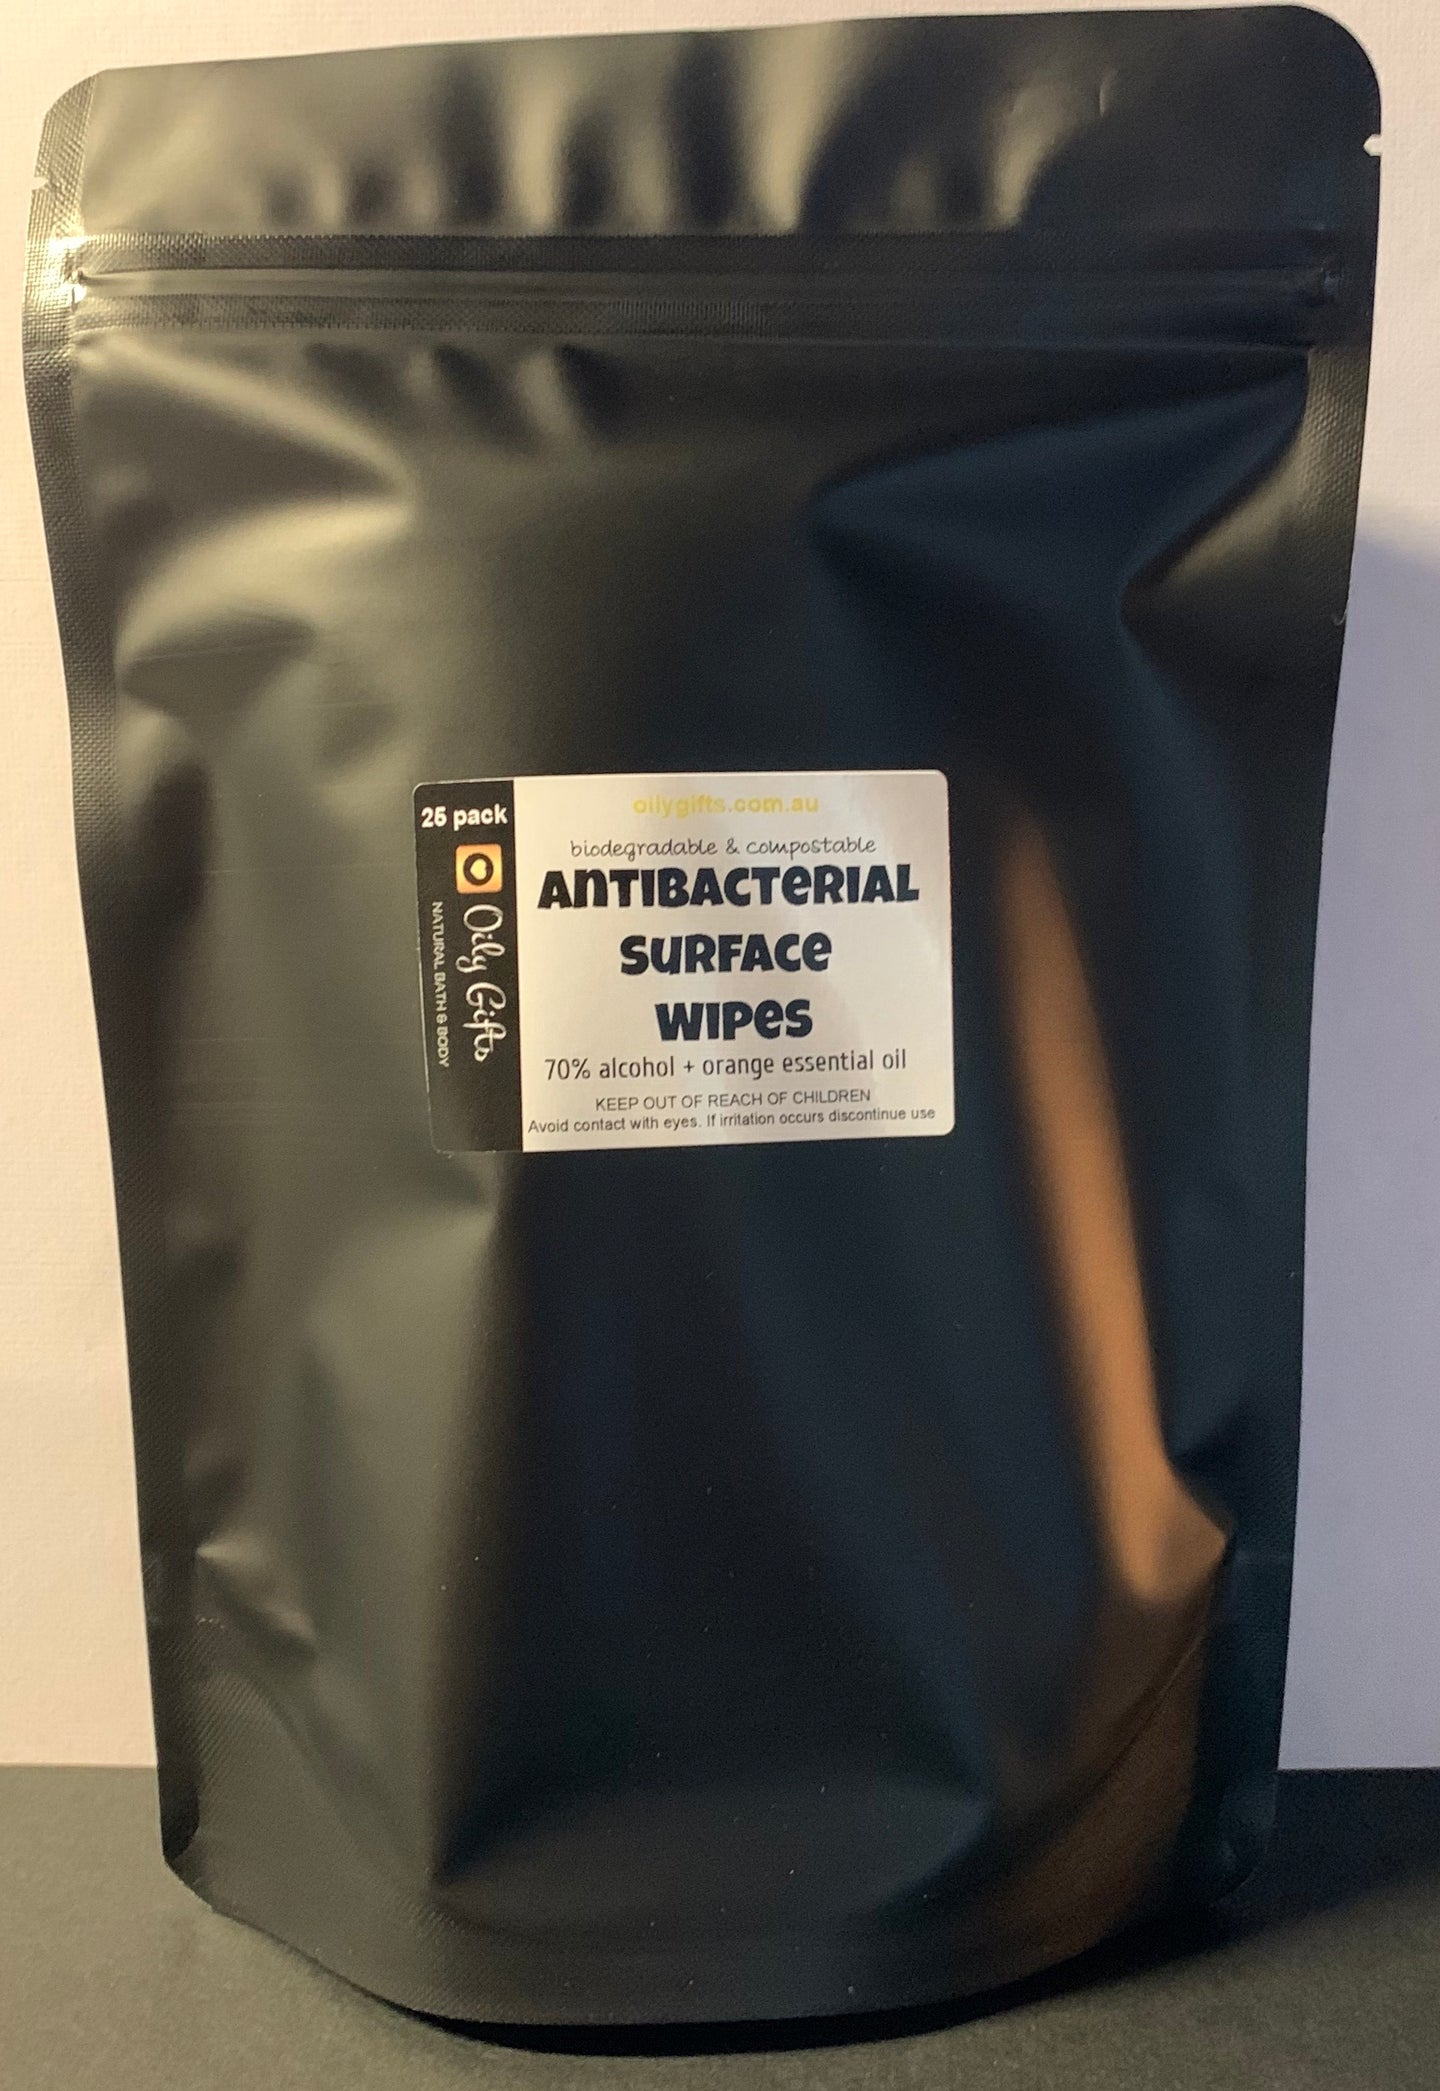 Antibacterial Surface Wipes 70% alcohol